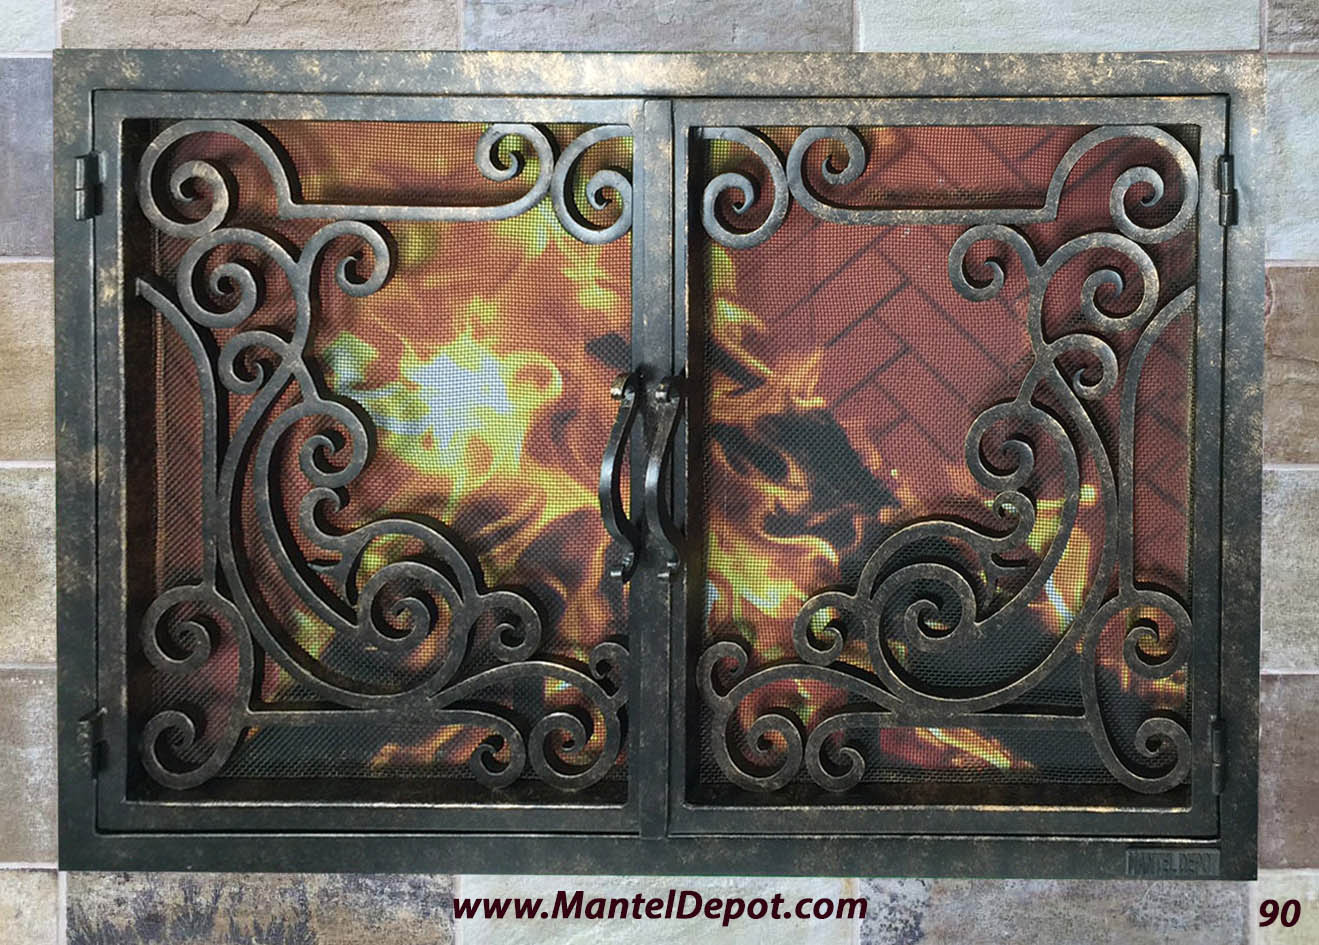 Hand Forged Iron Fireplace Doors Fd090 From Mantel Depot In San Diego